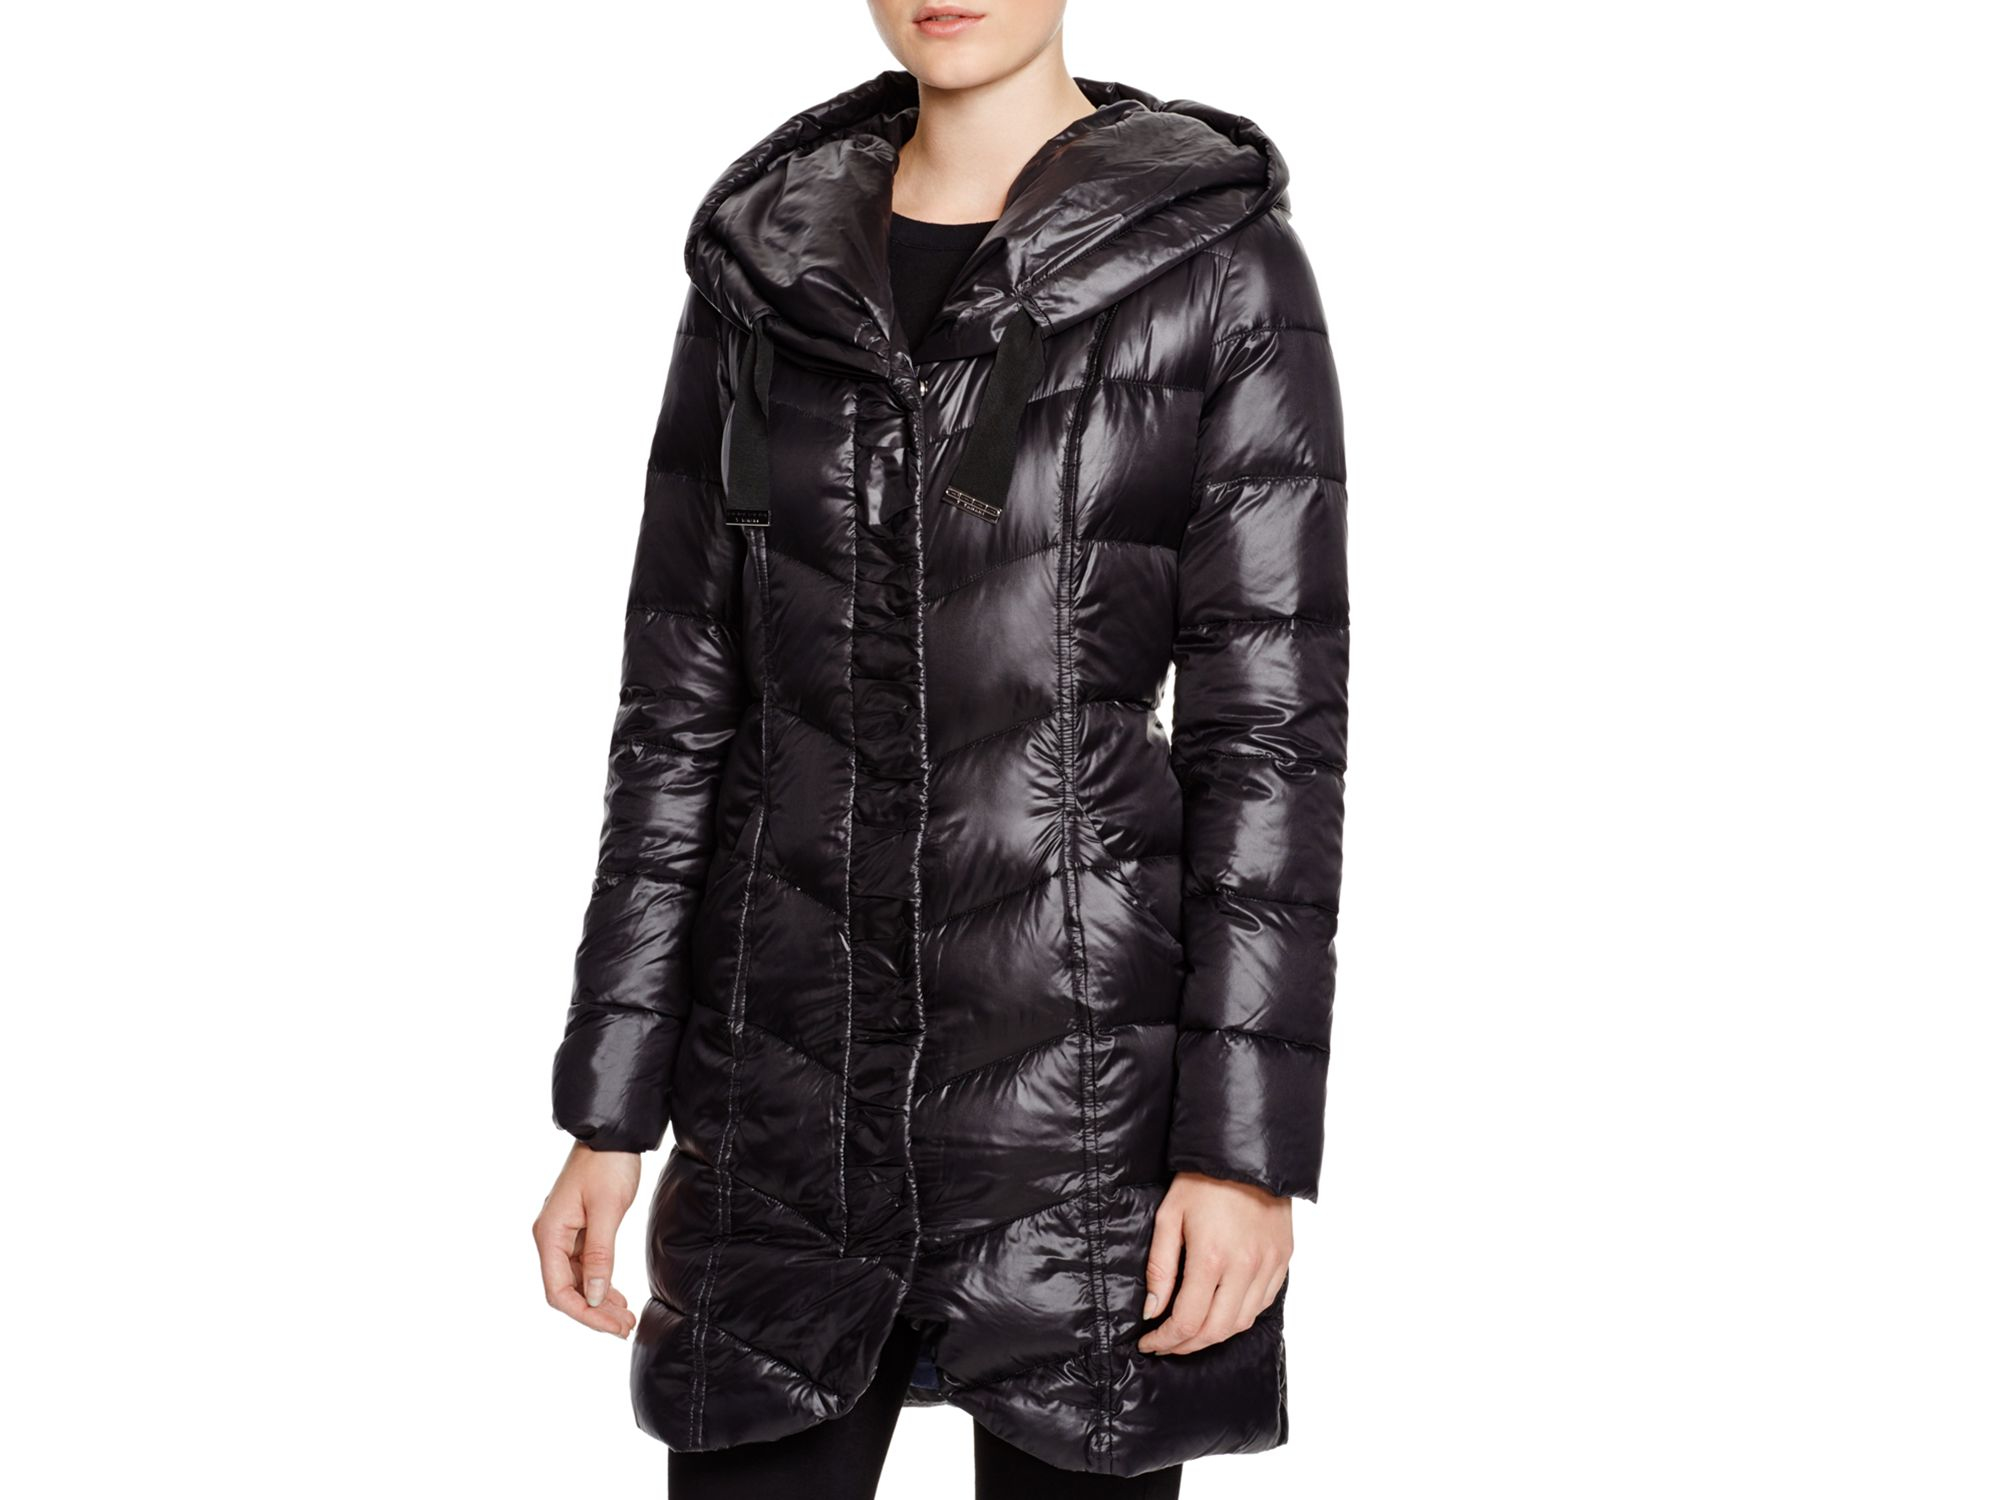 T tahari Giselle Quilted Down Coat in Black | Lyst